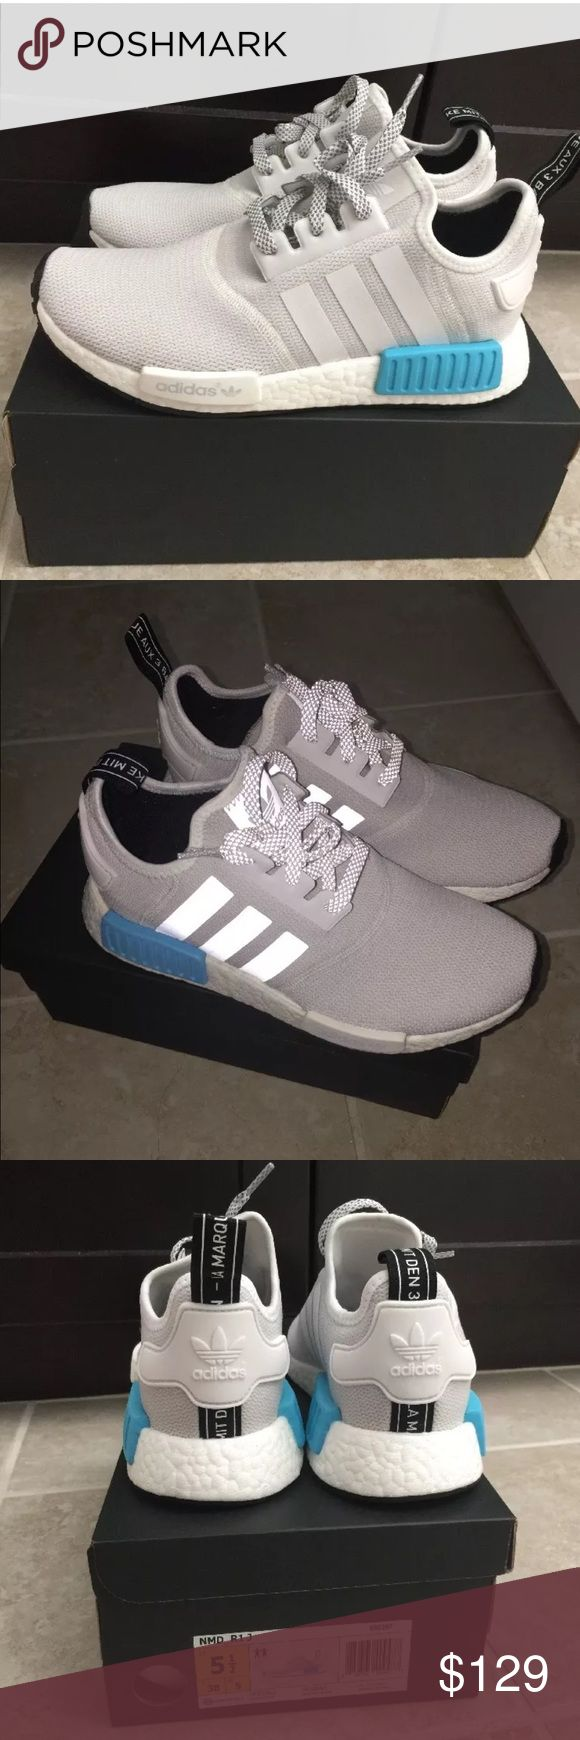 Adidas NMD R1 White Blue  GS 5.5 Wmns 7 Brand New In Box 100% Authentic Guaranteed! Adidas NMD R1 Nomad Runner Boost  Running White Grey / Bright Cayan Blue  S31511  GS 5.5 / Wmns size 7 Adidas Shoes Sneakers